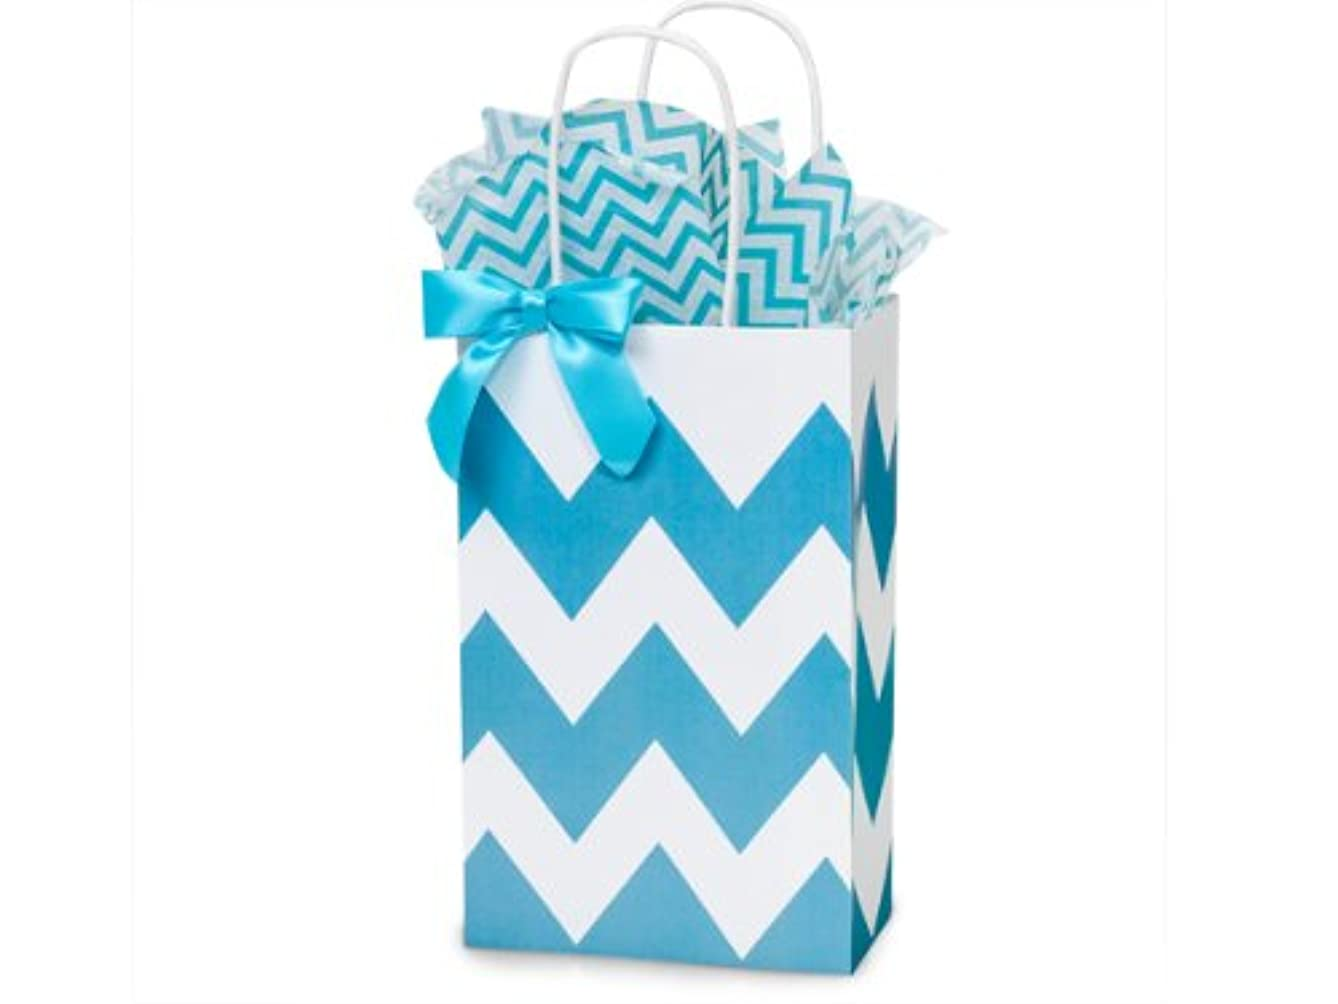 Turquoise Blue & White Chevron Small Shopper Gift Bags - Quantity of 25